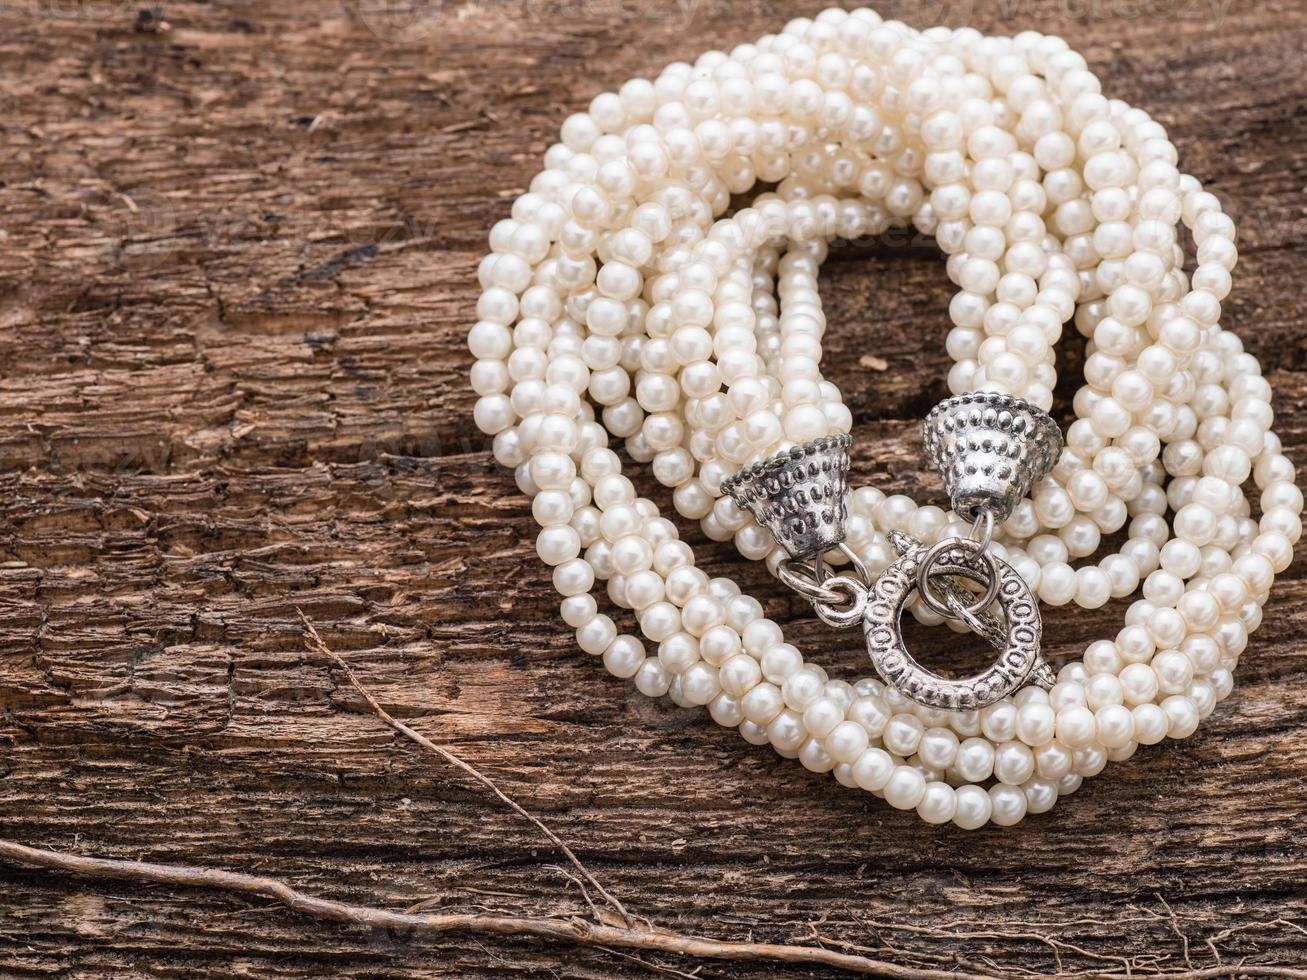 Pearl necklace on wood background with copy space photo